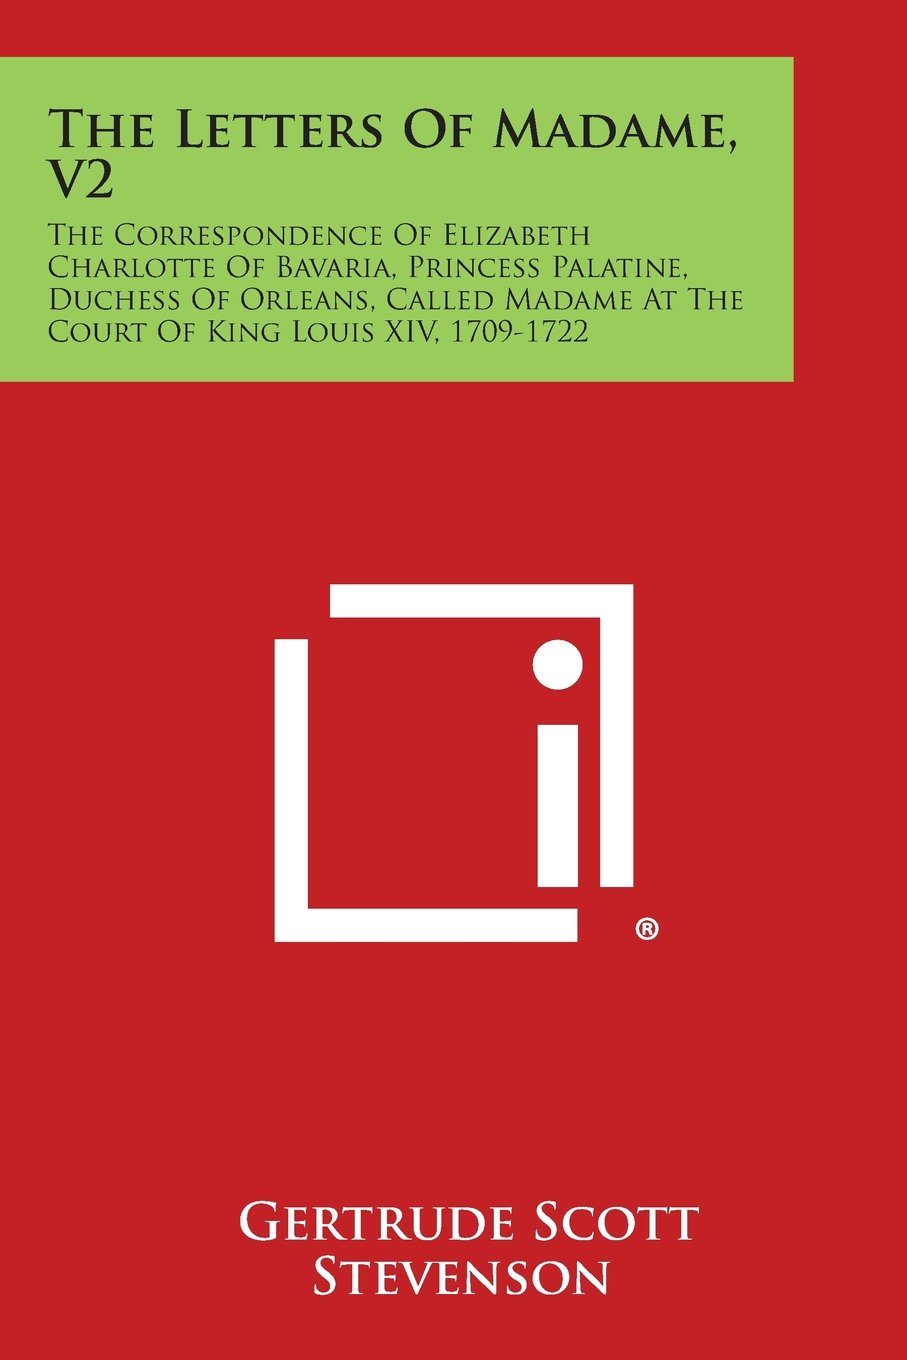 The Letters of Madame, V2: The Correspondence of Elizabeth Charlotte of Bavaria, Princess Palatine, Duchess of Orleans, Called Madame at the Cour ebook